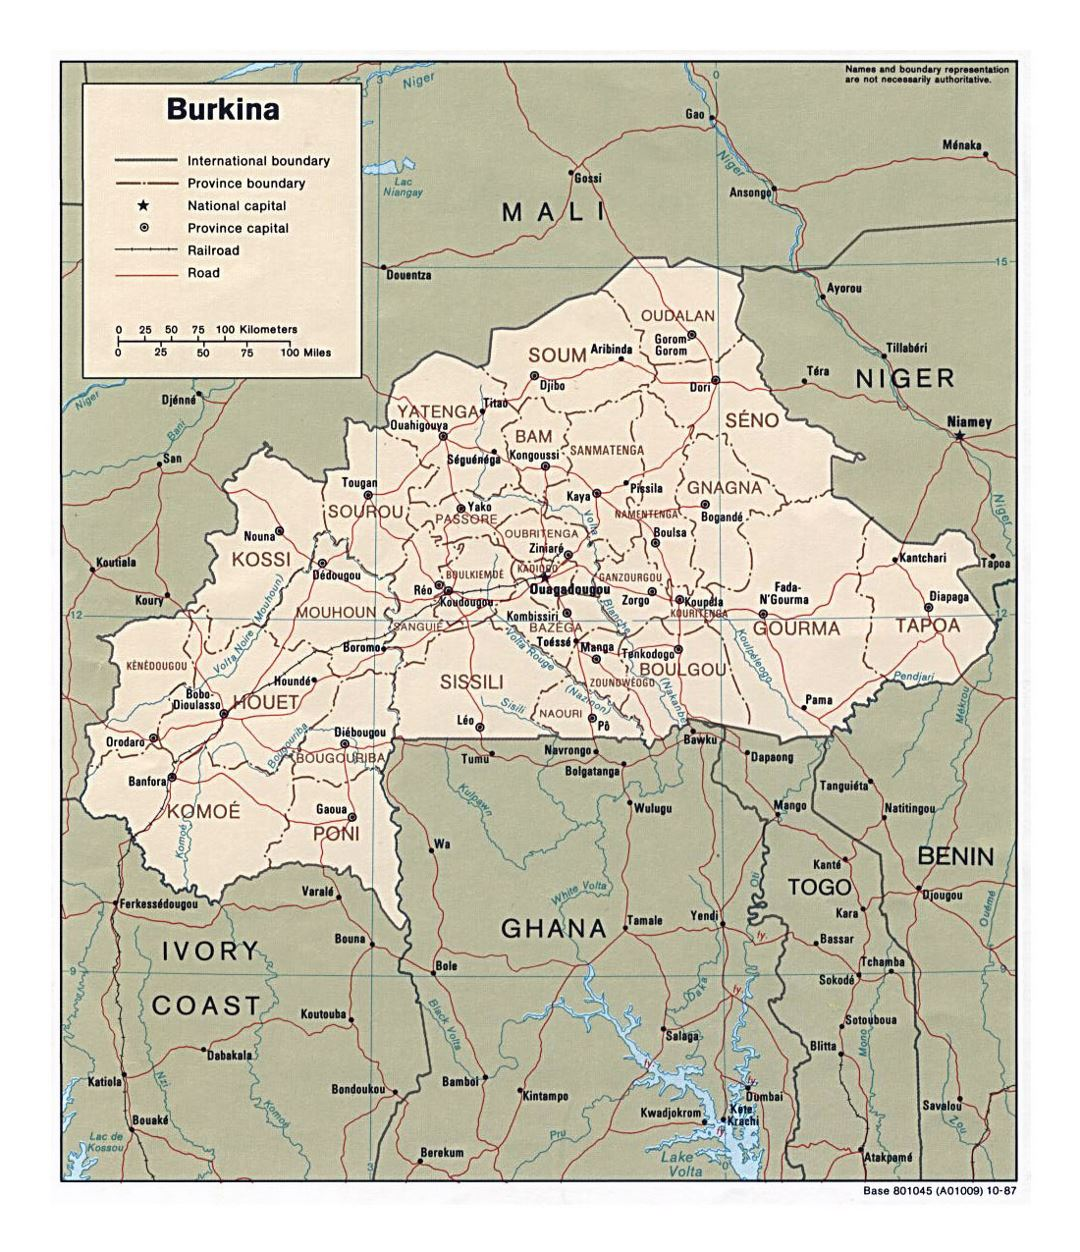 Detailed political and administrative map of Burkina Faso with roads, railroads and major cities - 1987